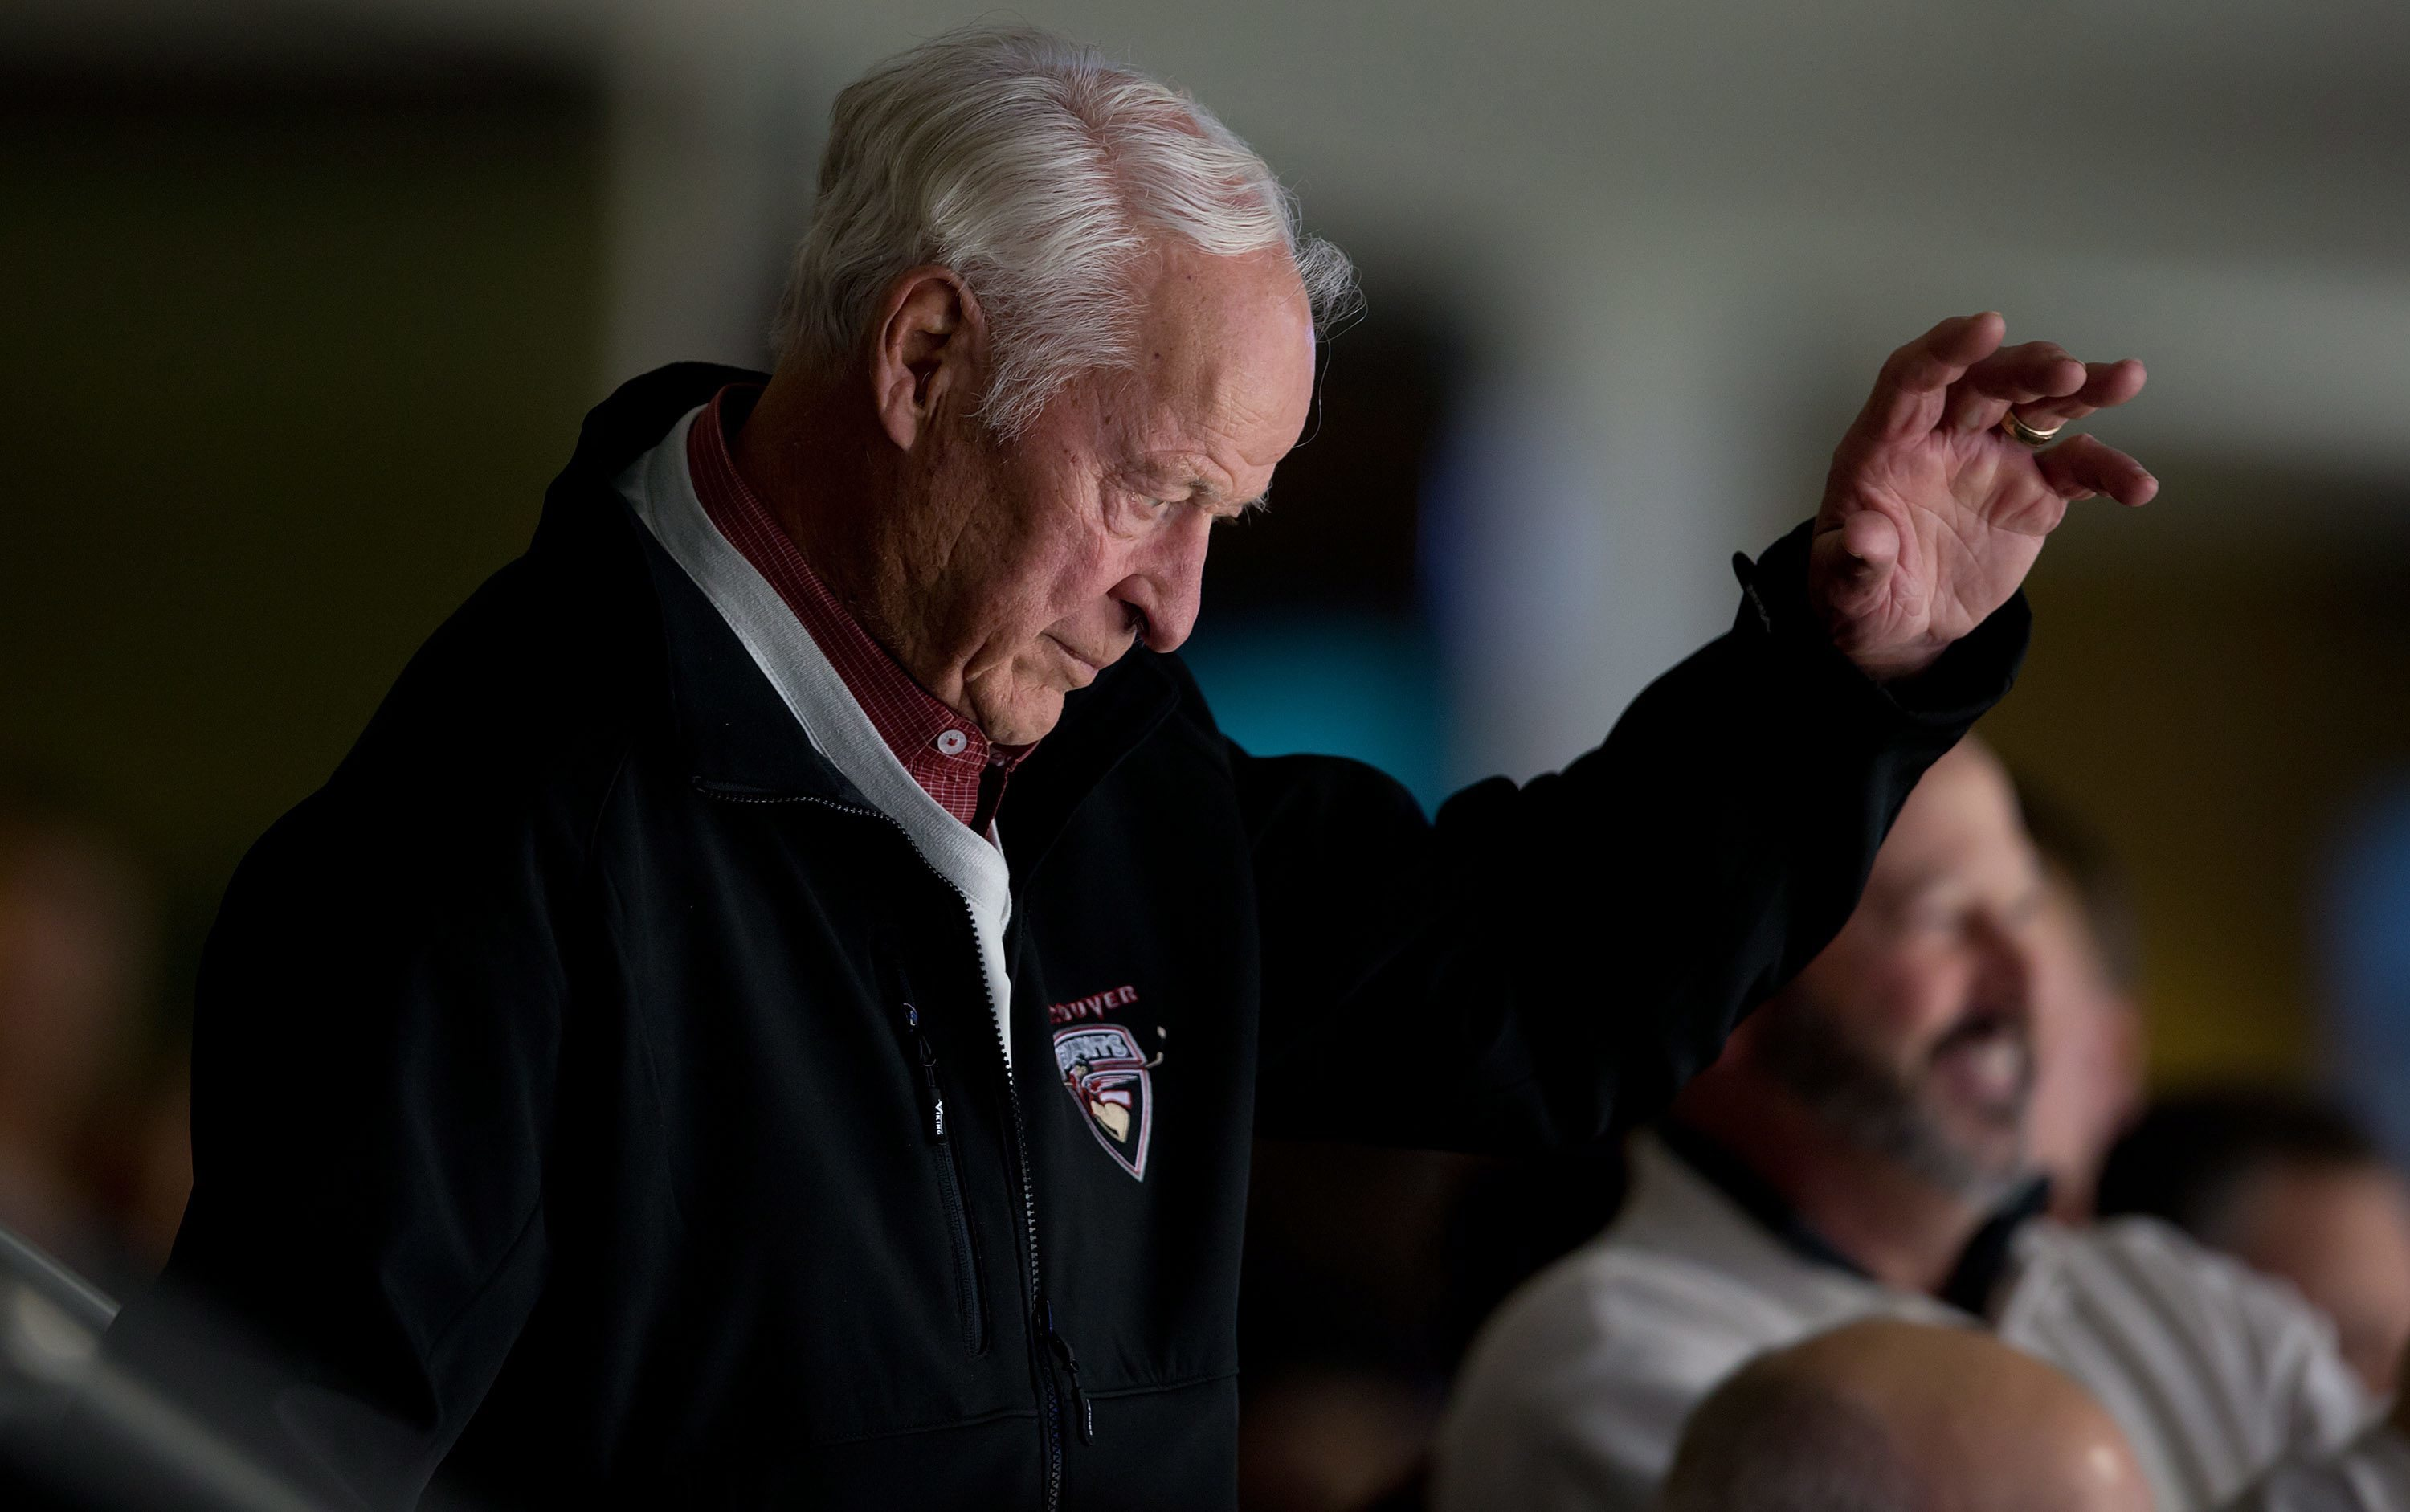 FILE - In this Nov. 14, 2013, file photo, hockey great Gordie Howe acknowledges a standing ovation from the crowd as he watches the Vancouver Canucks and San Jose Sharks play during an NHL hockey game in Vancouver, British Columbia. Gordie Howe, the hocke